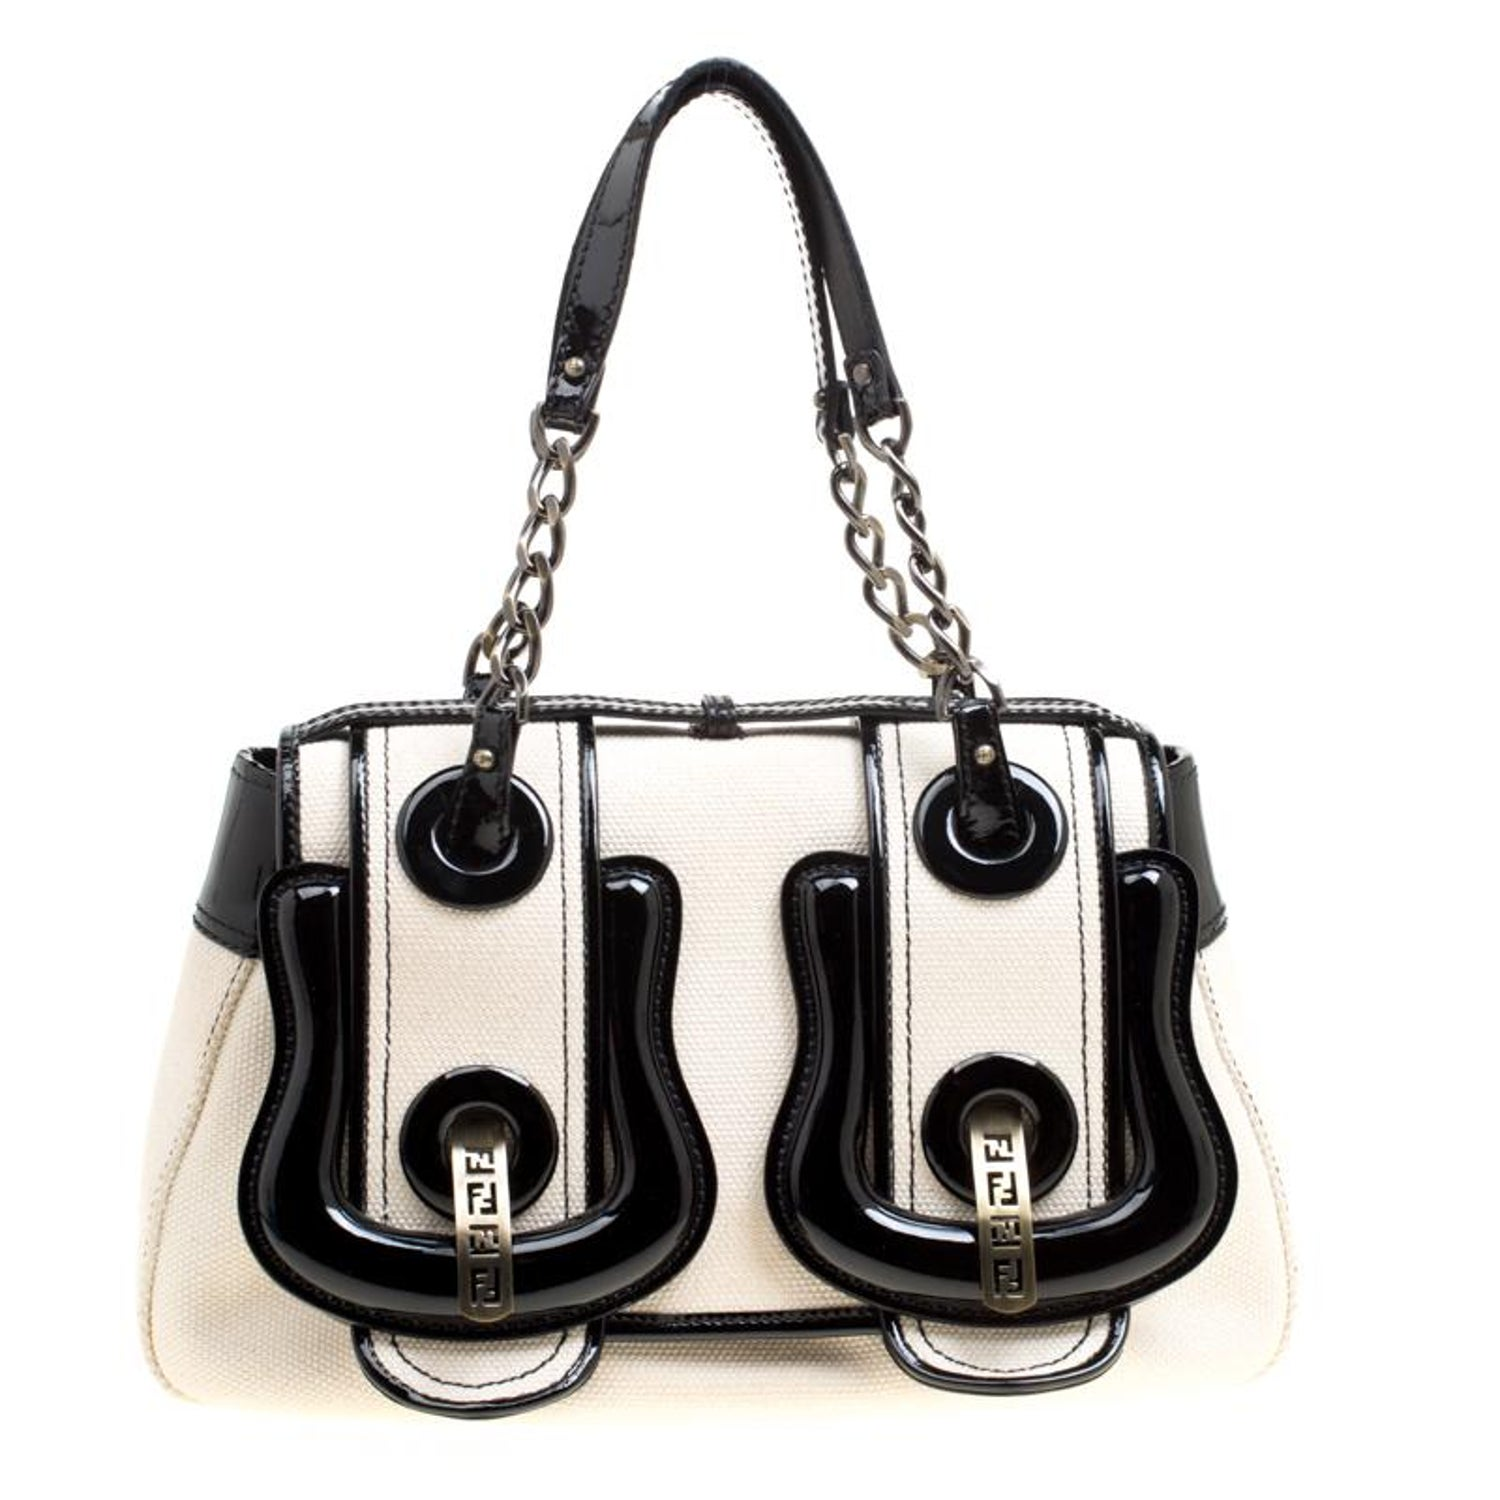 b25599c5c6 Fendi Off White/Black Canvas and Patent Leather B Shoulder Bag